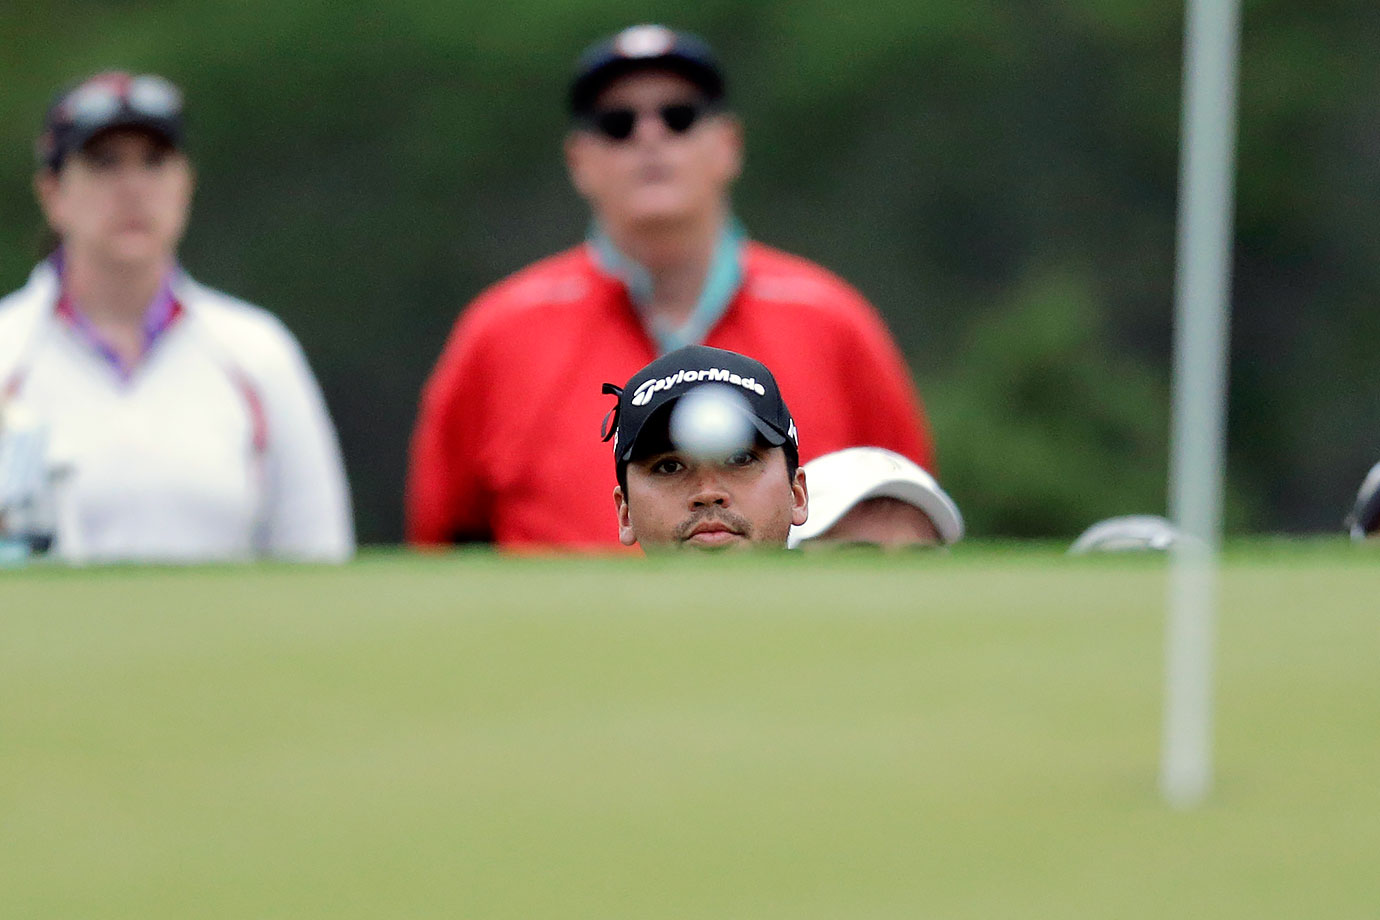 Jason Day watches his ball after chipping to the first green during the round of 16 play at the Dell Match Play Championship at Austin County Club in Austin, Texas.